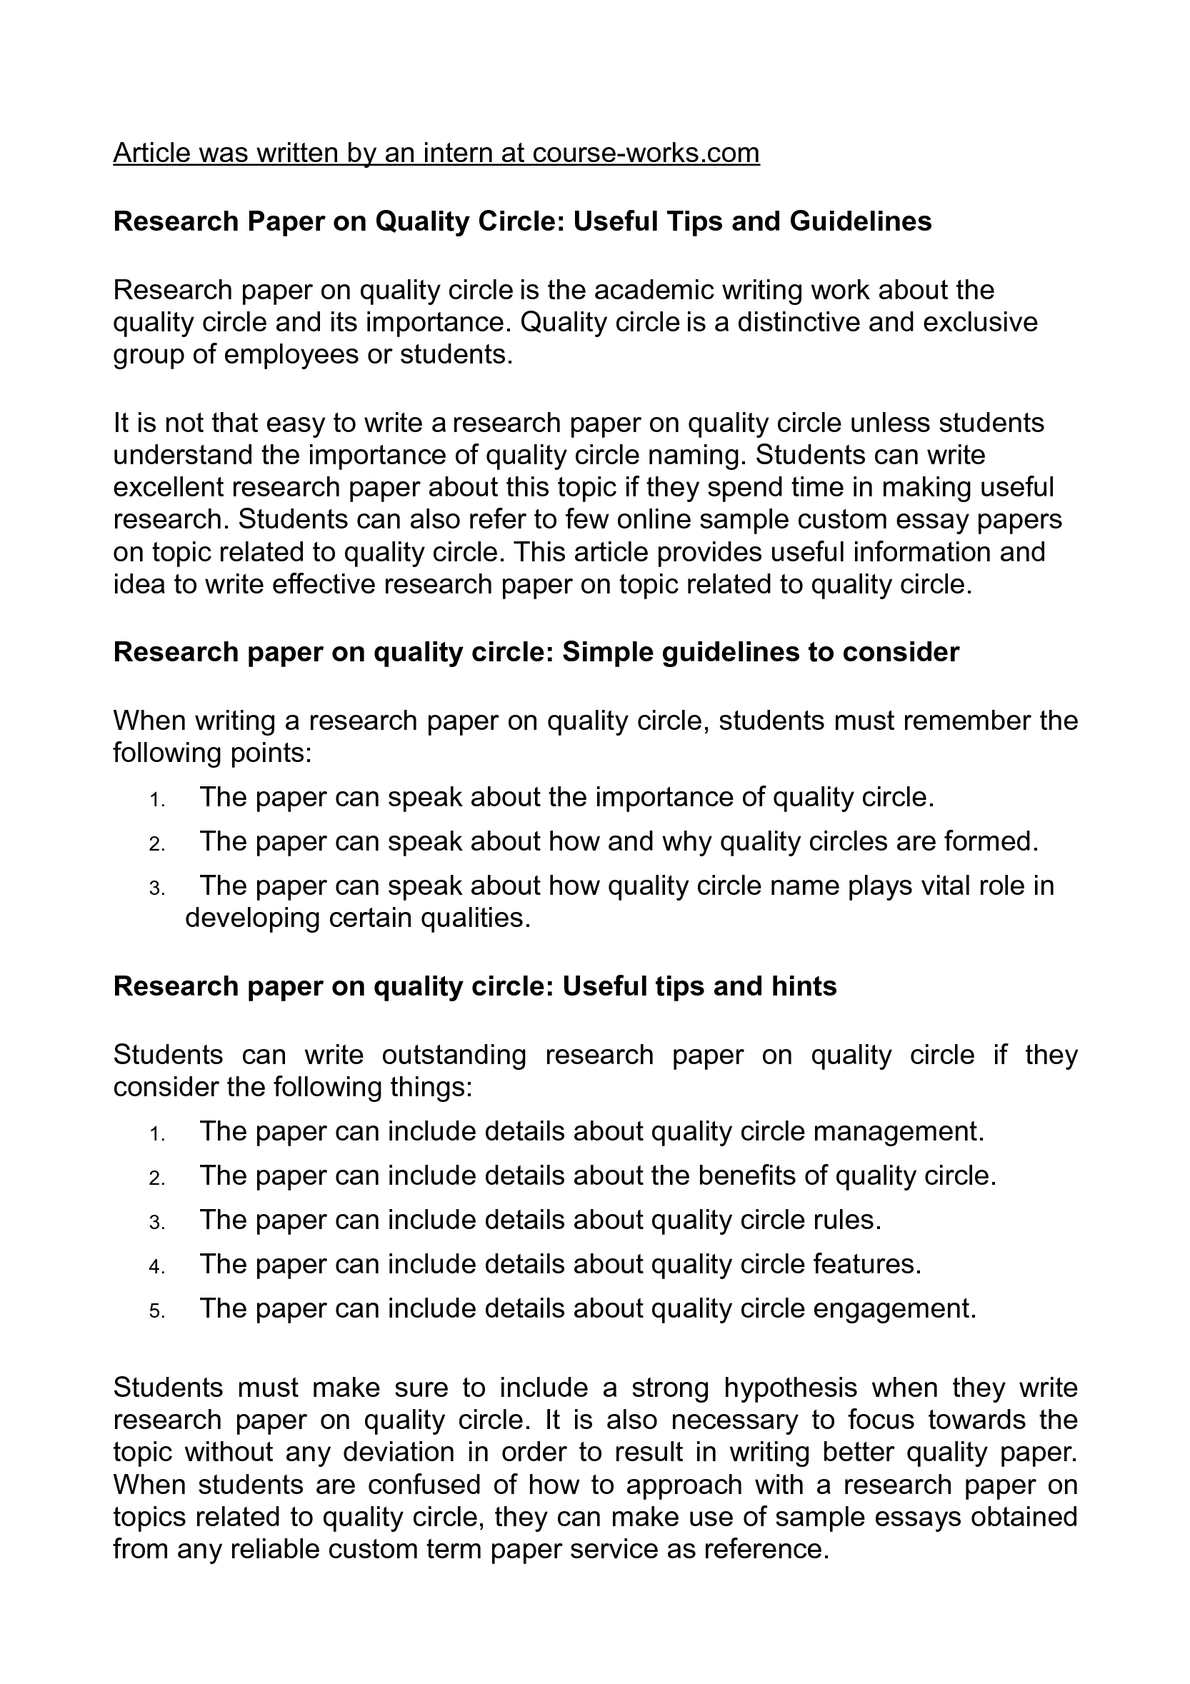 008 P1 Research Paper Wonderful Written Buy Pre Papers For Sale Free Full